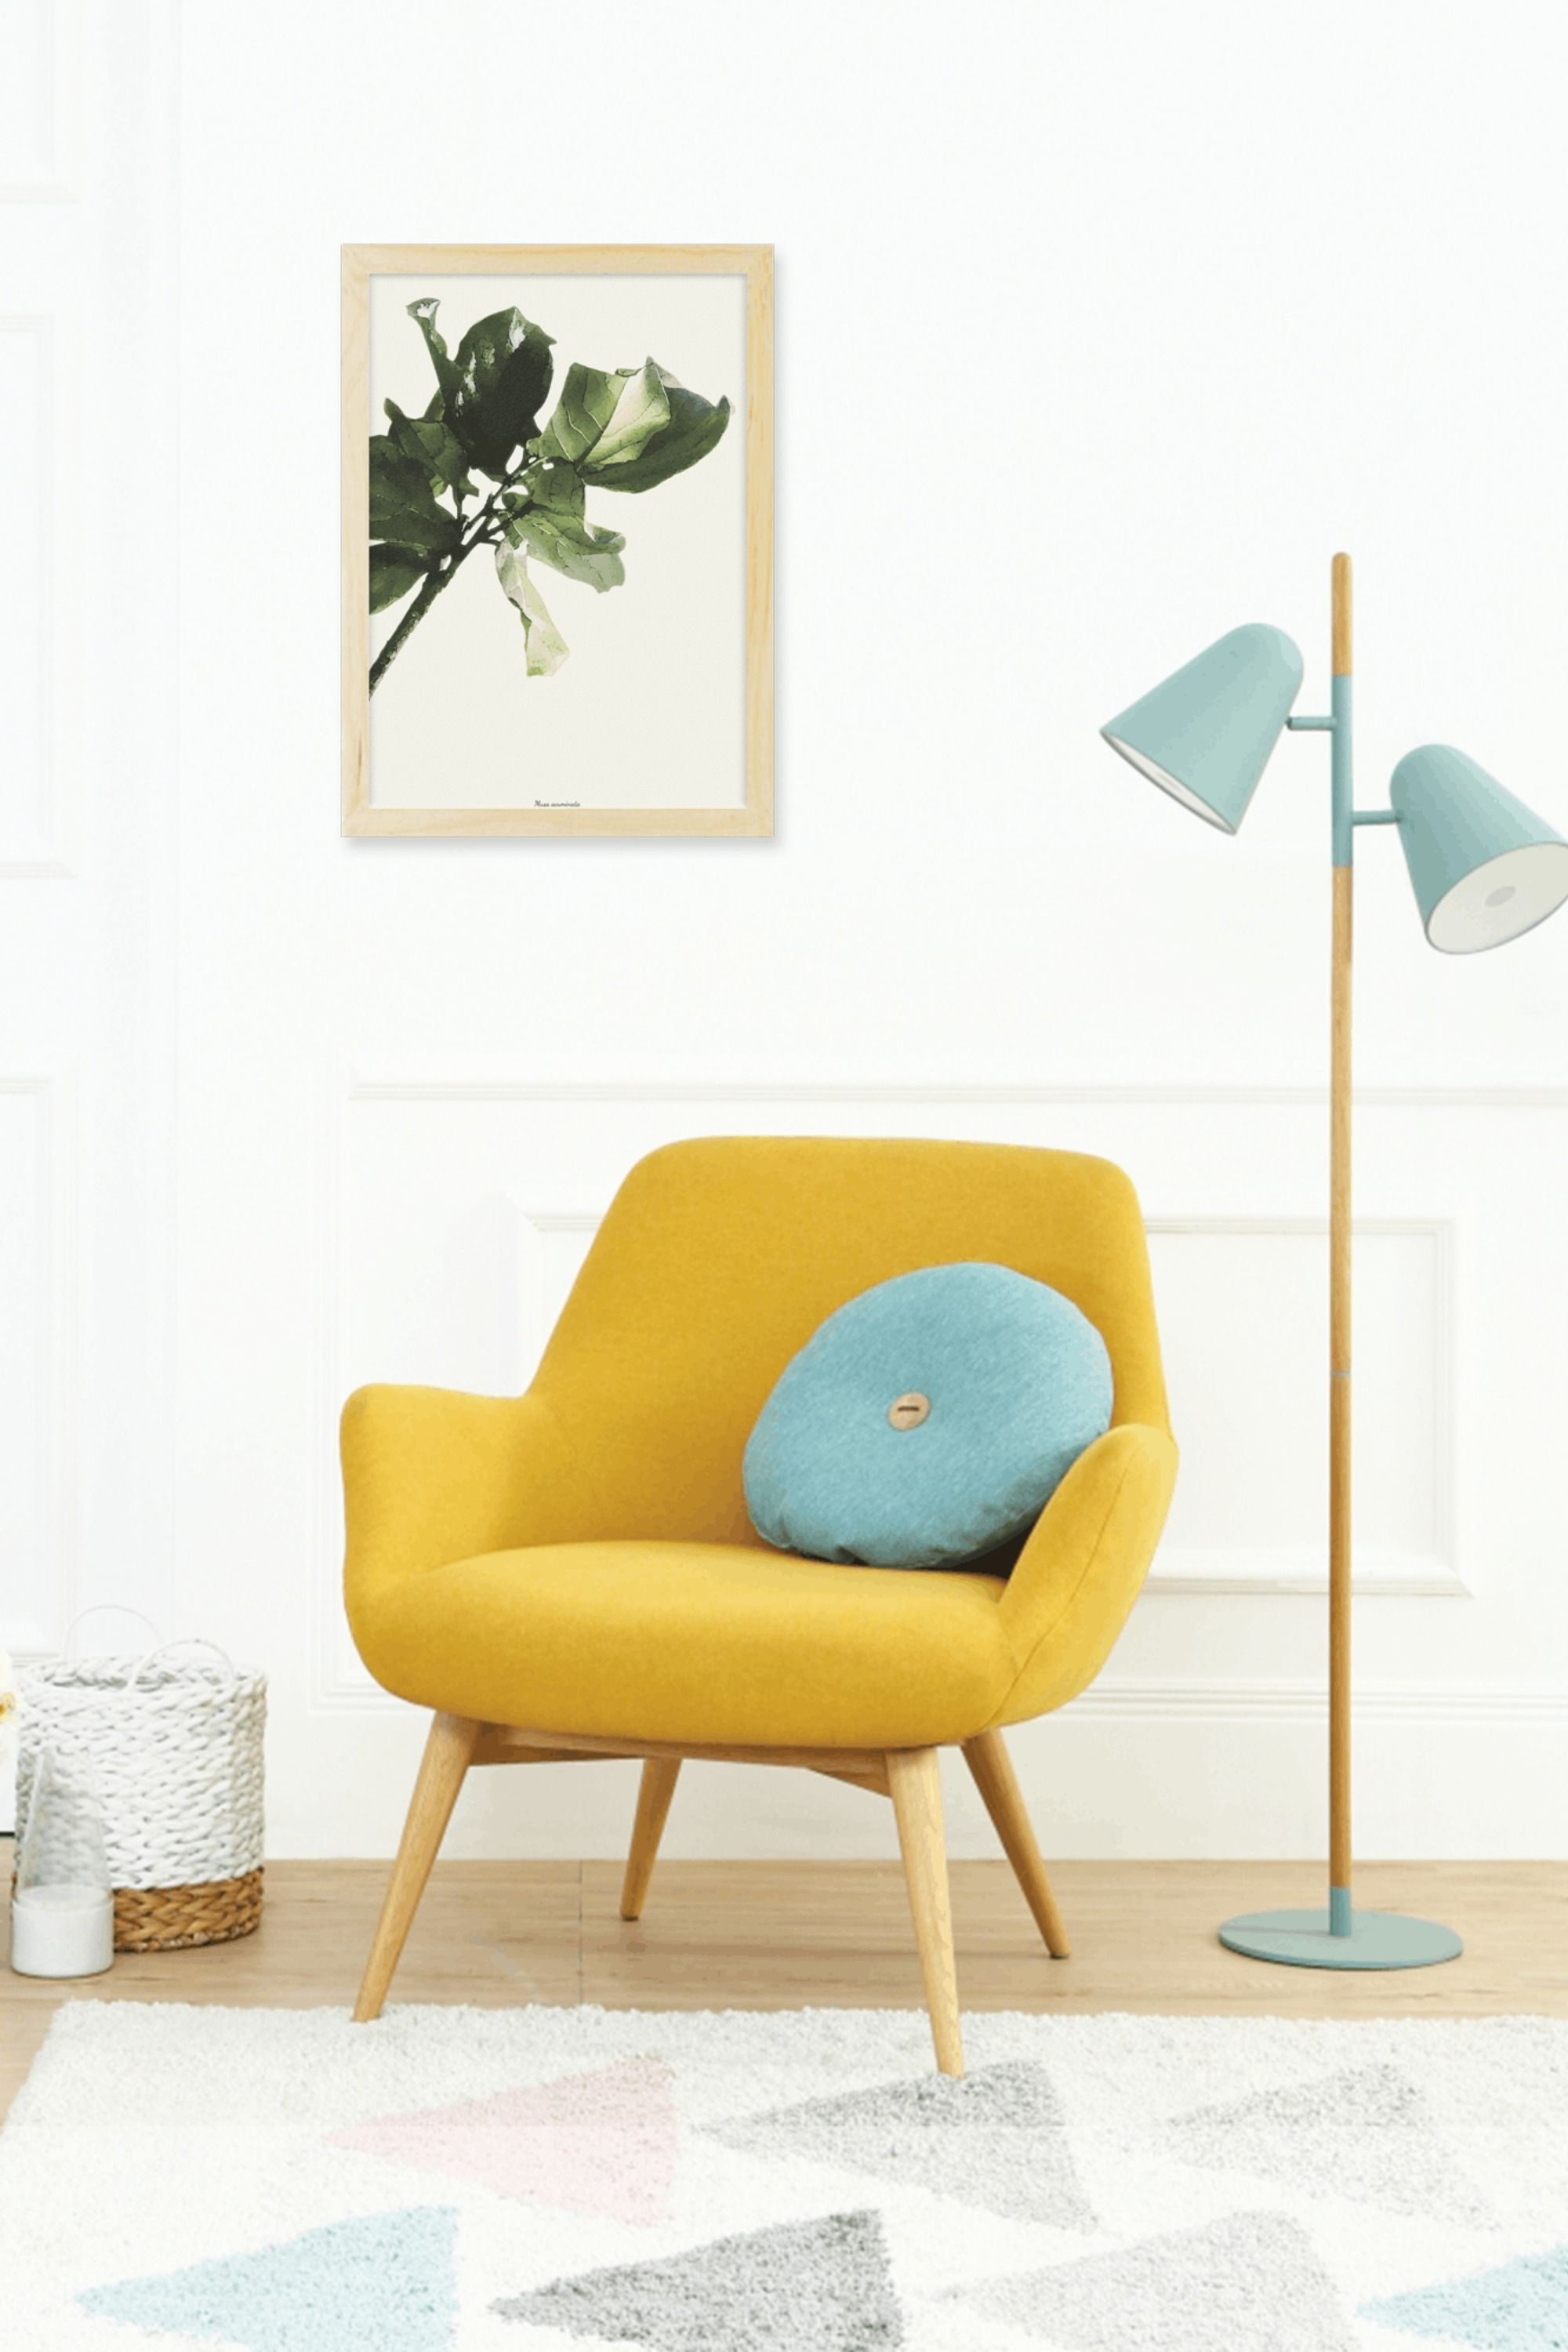 A Fun Way To Personalise Your Interior Space Is To Add Trendy Wall